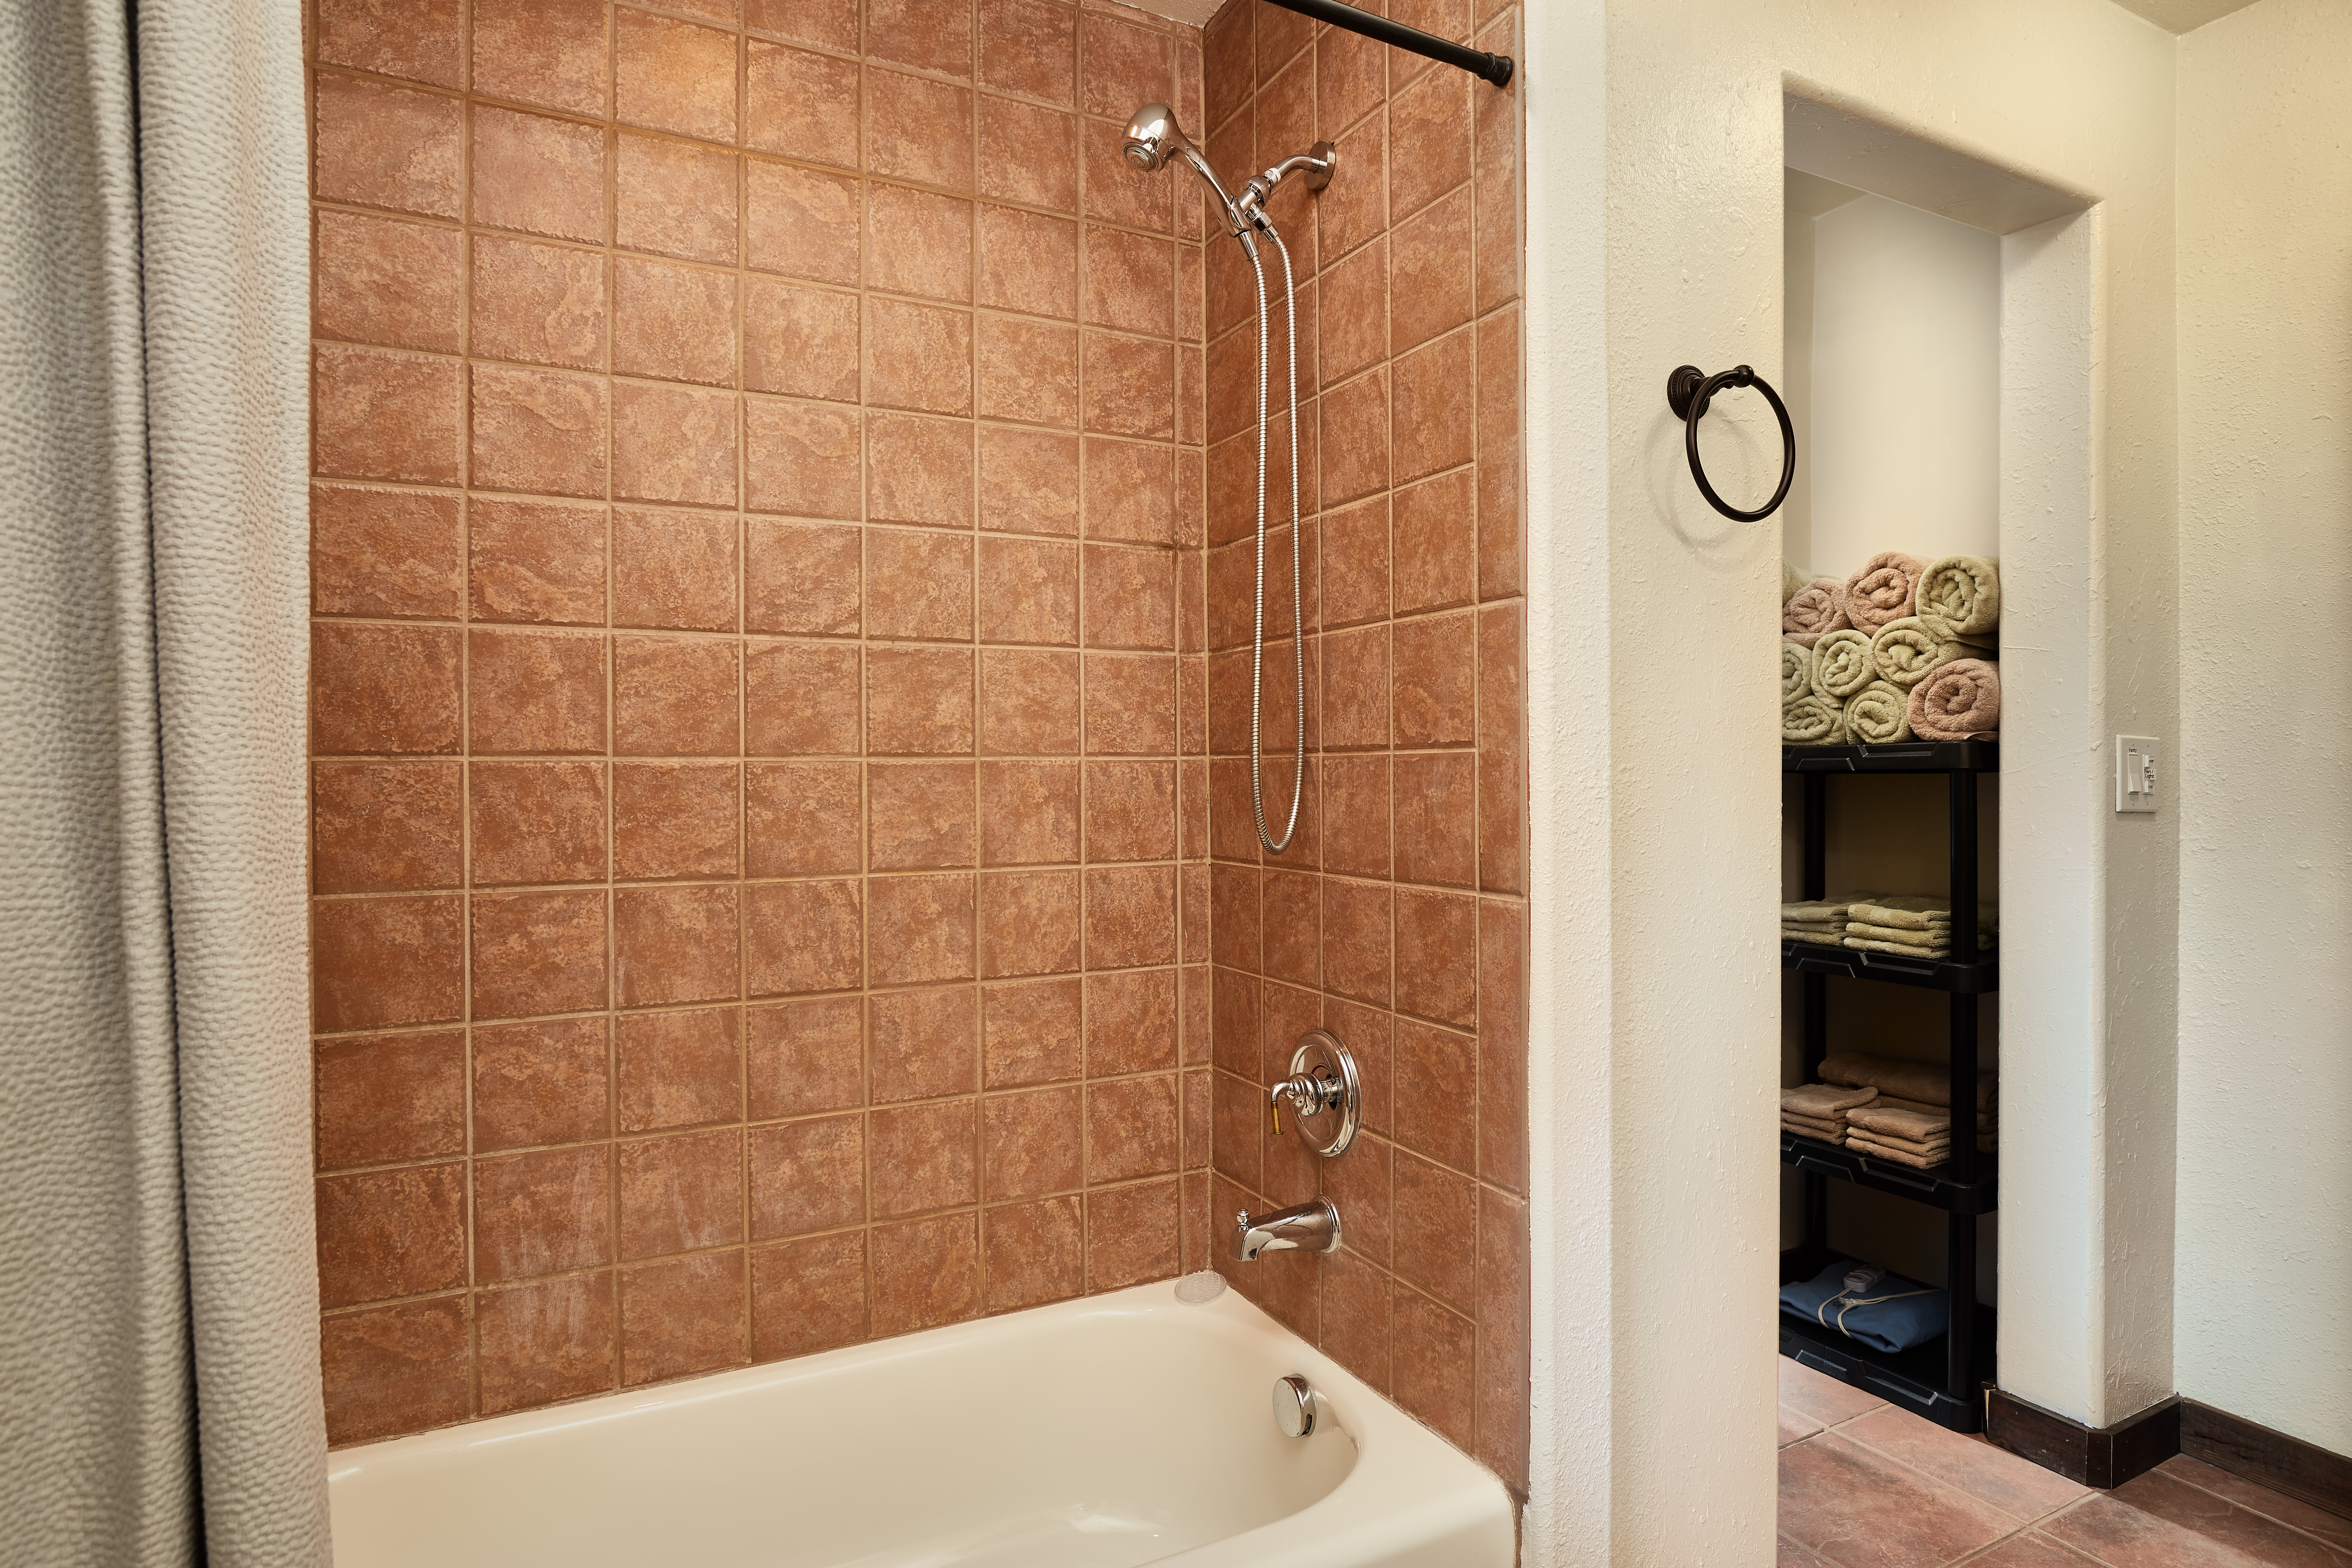 The upstairs bathroom has a shower/tub combo.